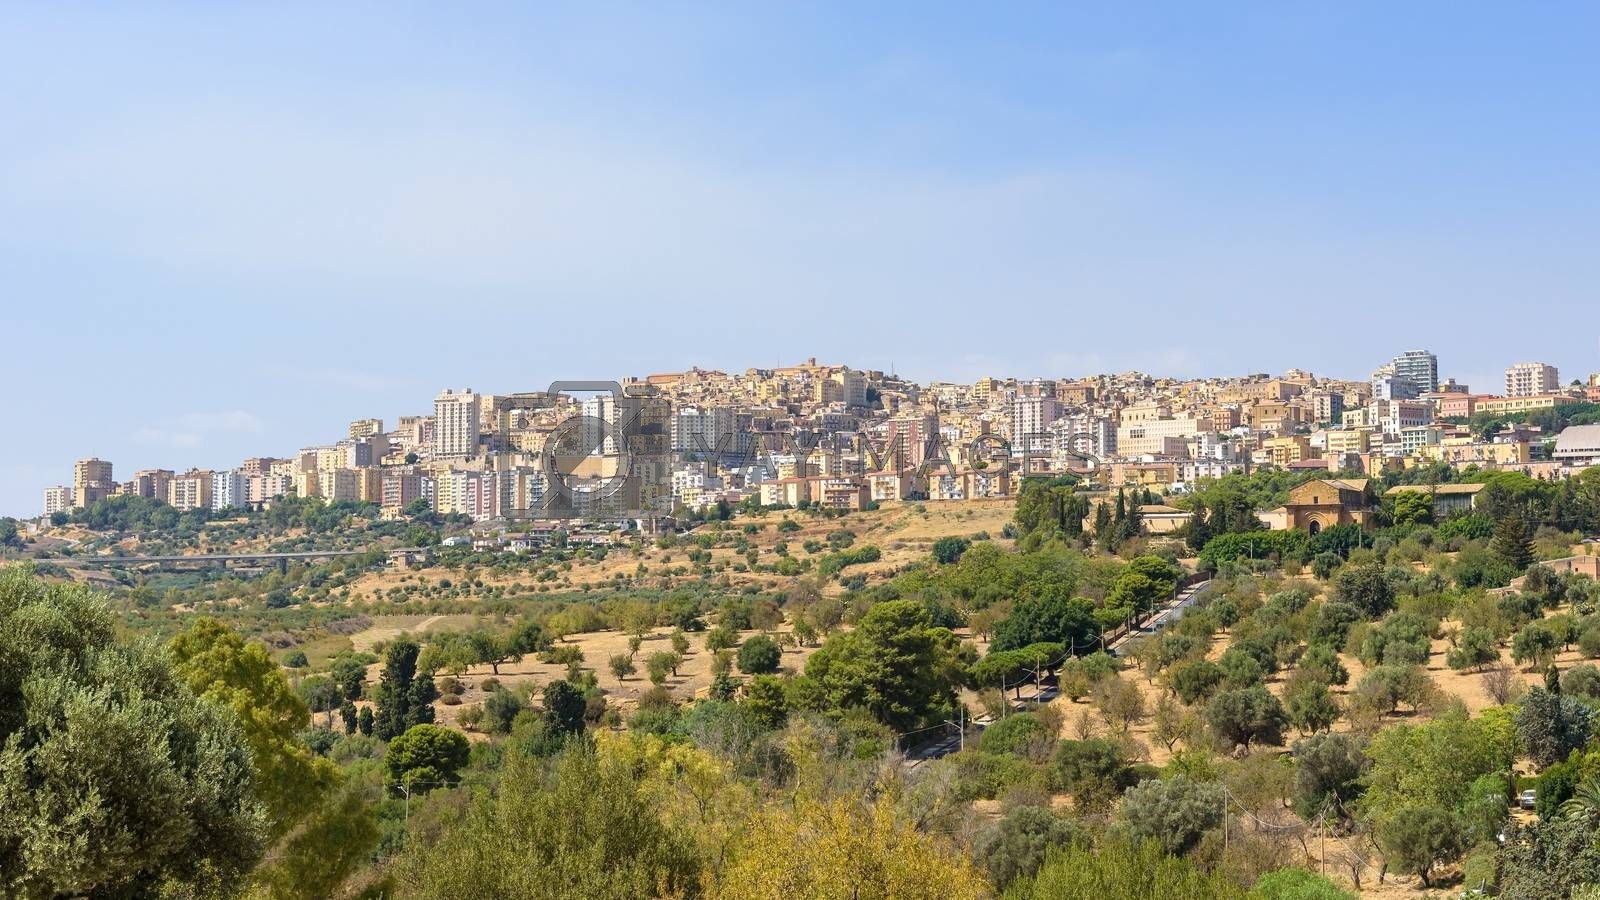 Panoramic view of Agrigento city on the southern coast of Sicily, Italy